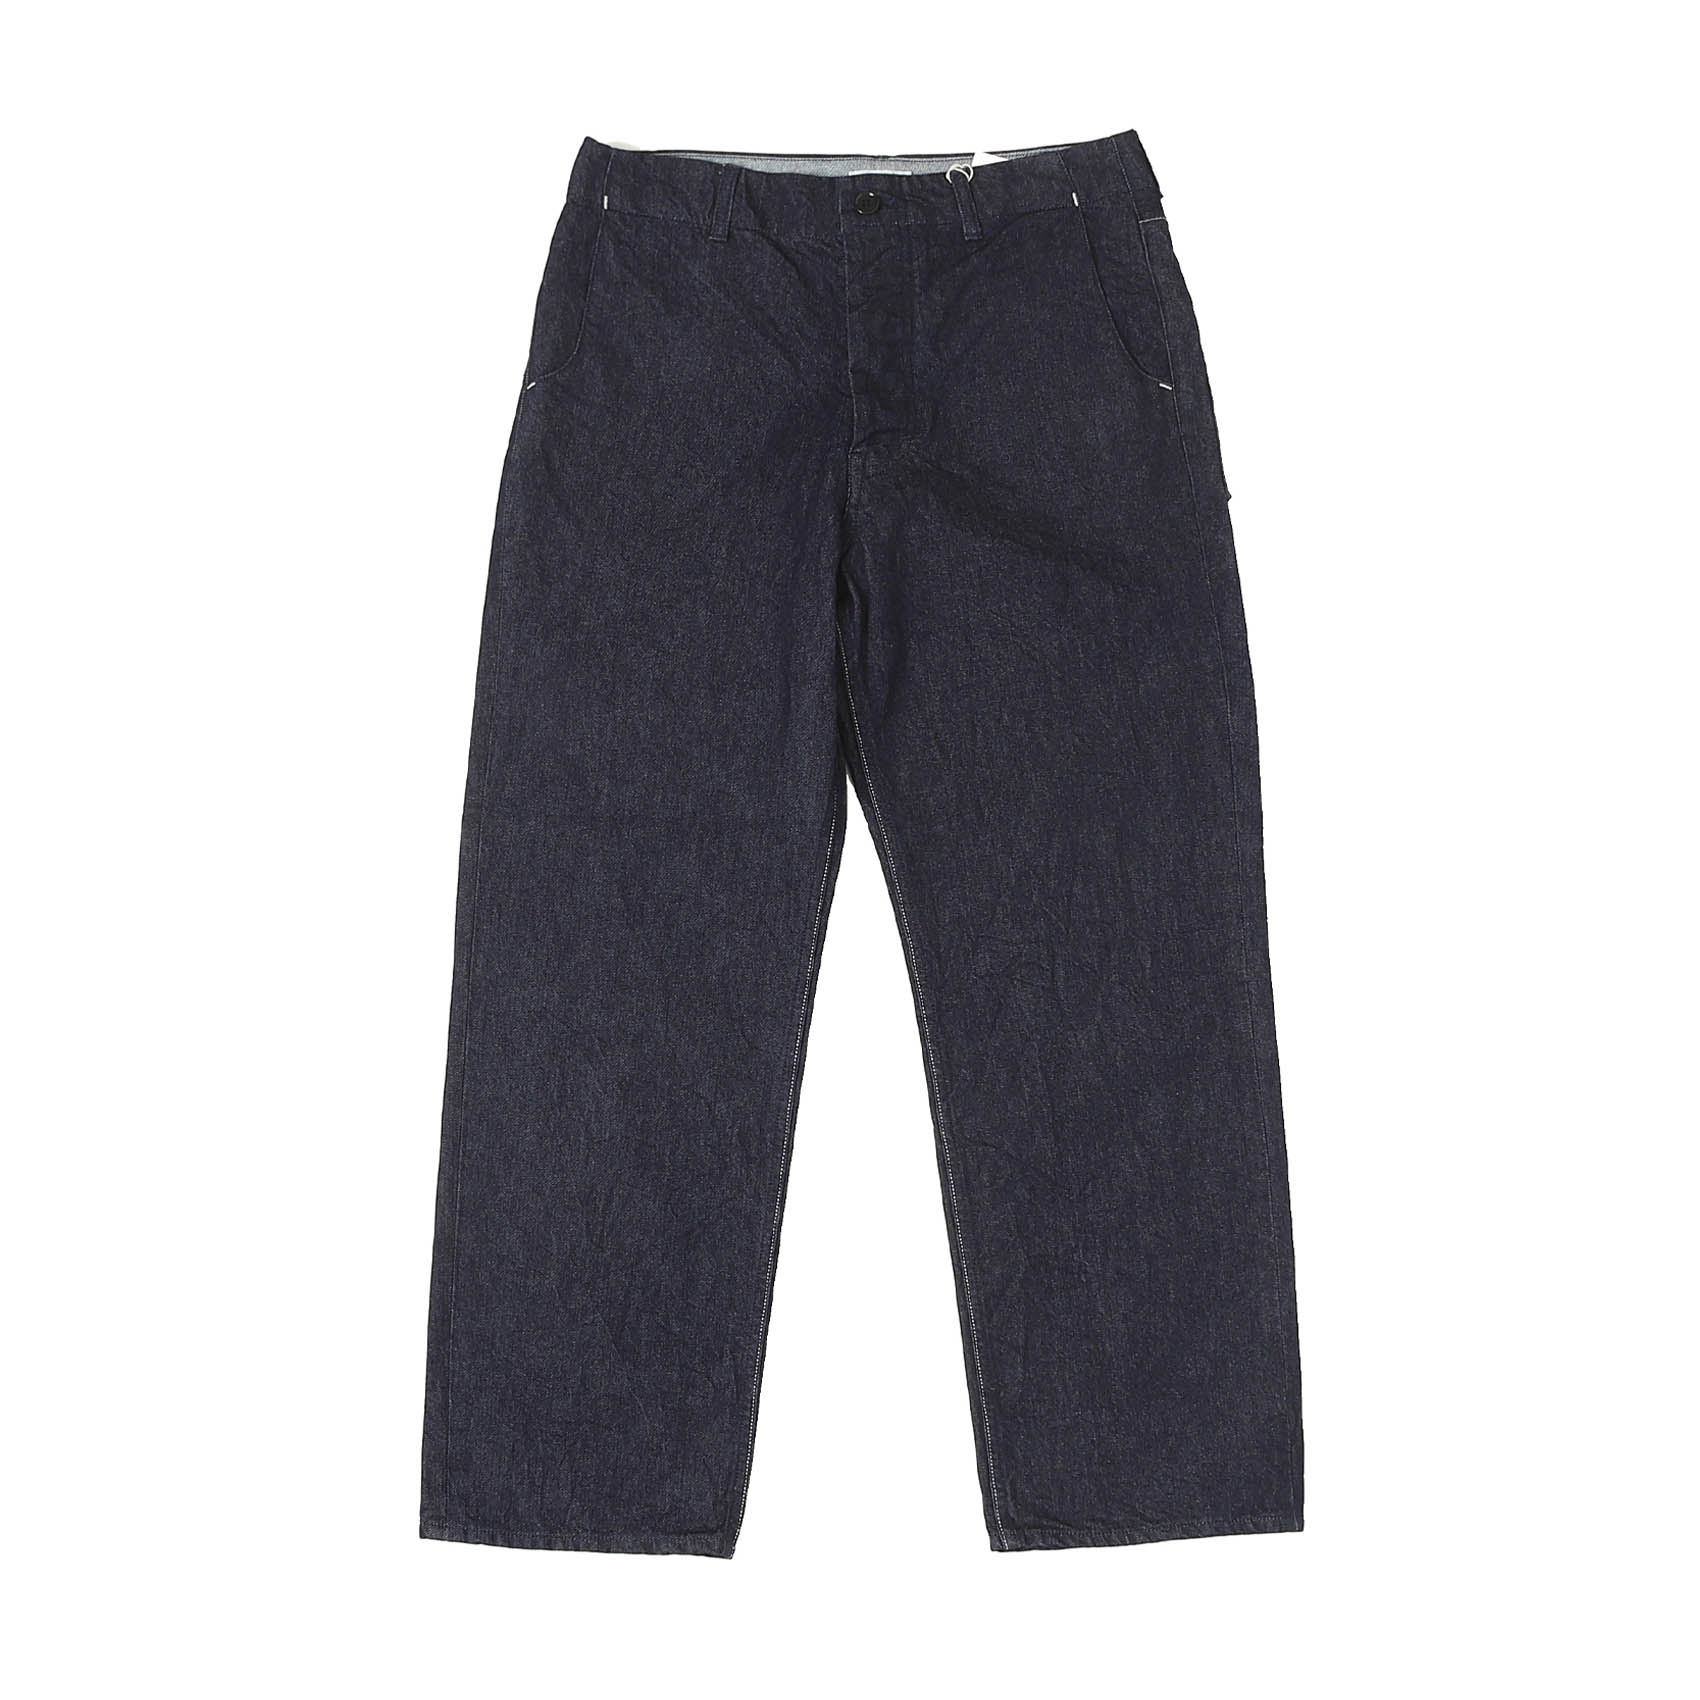 CINCHED DENIM PANTS - INDIGO